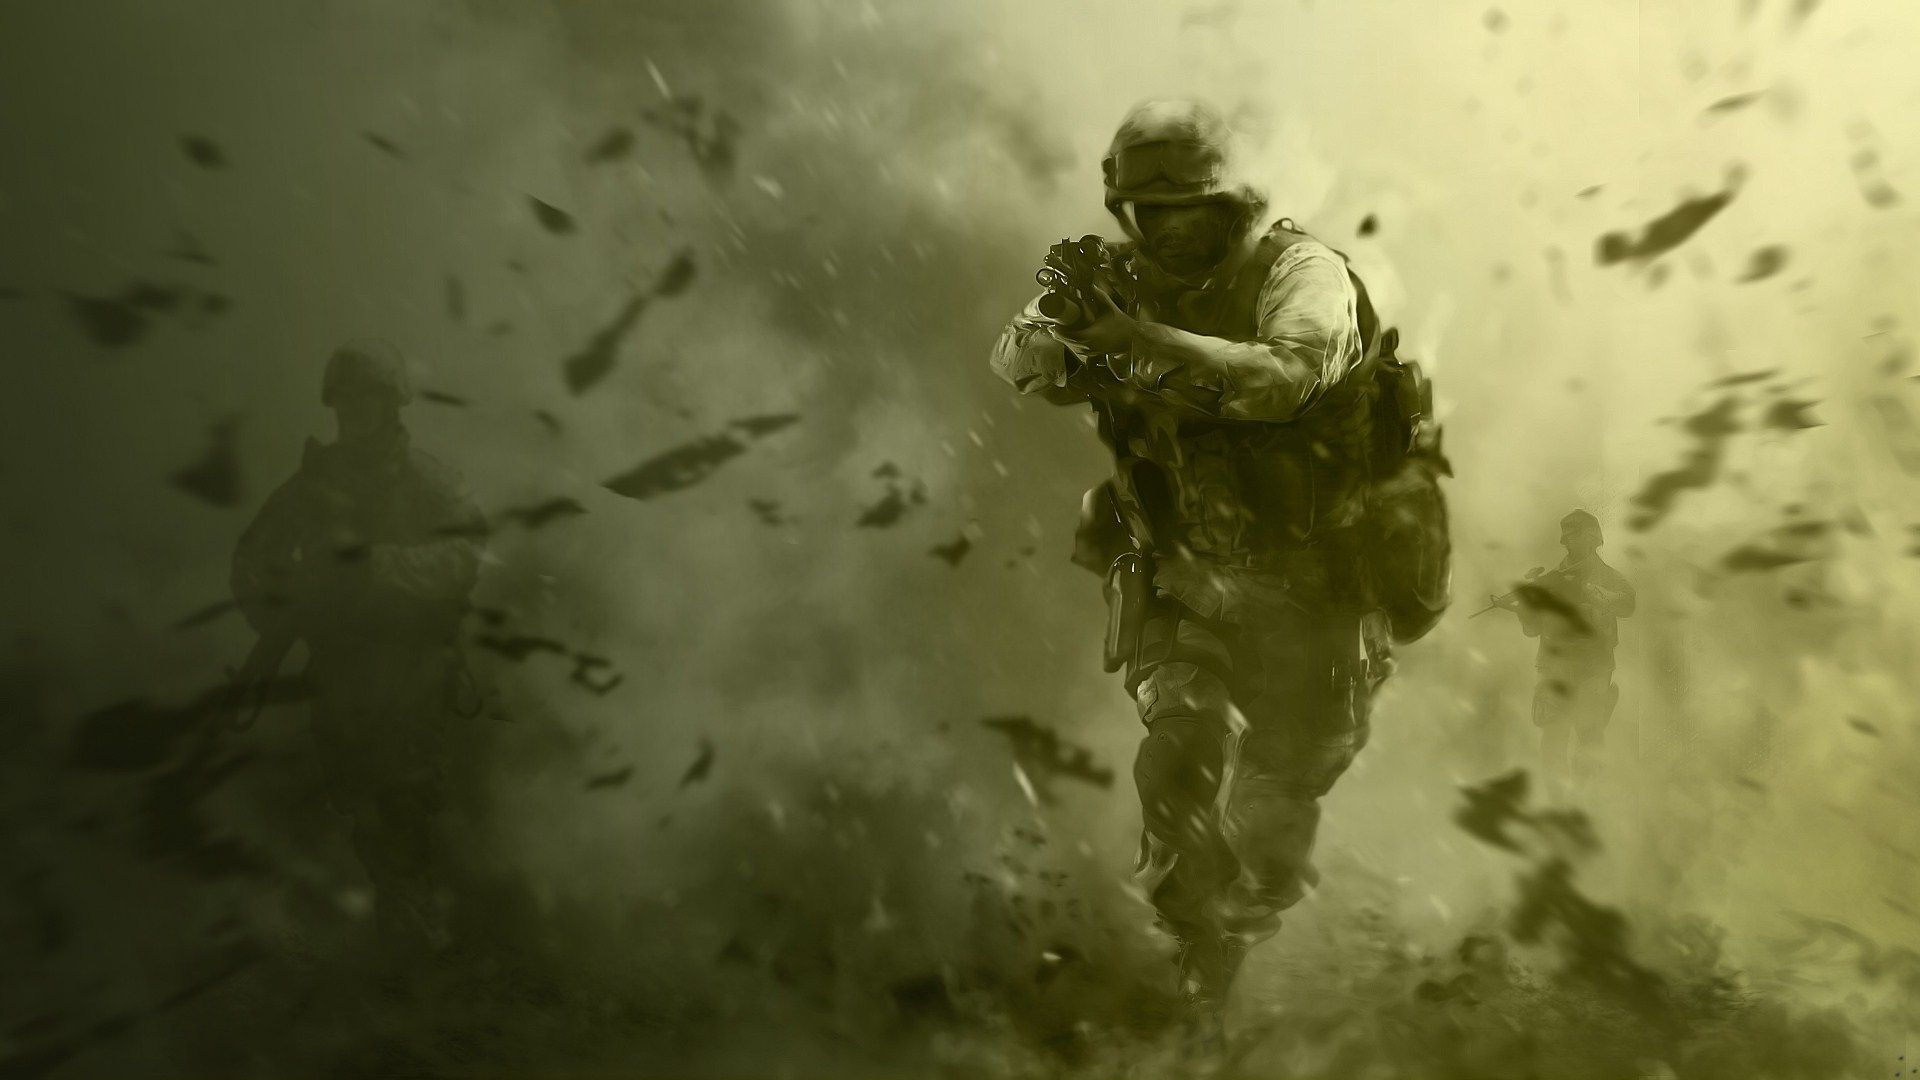 Cool Army Wallpapers army background Is Cool Wallpapers Jess 1920x1080